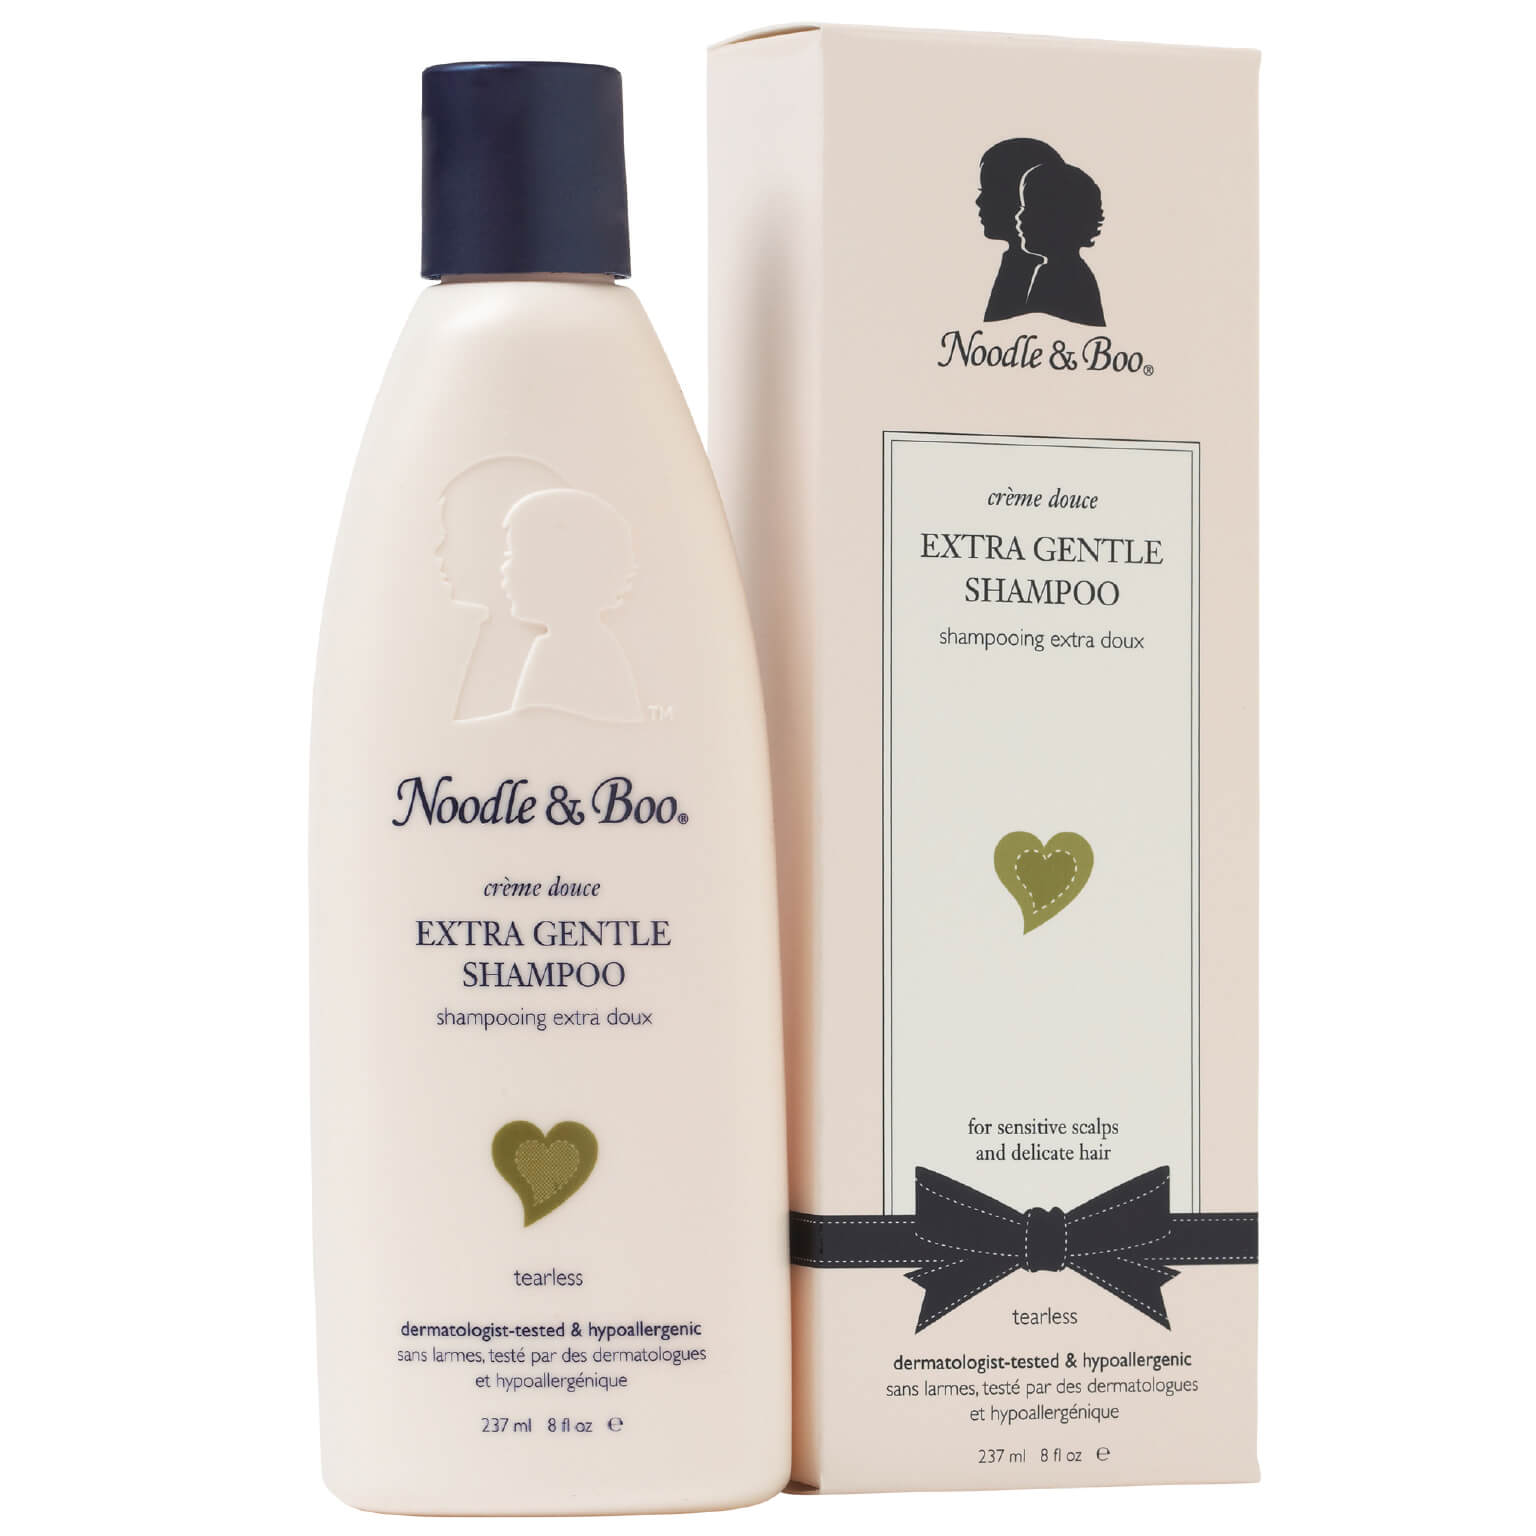 https://www.noodleandbooturkiye.com/media/uploads/options/files/Extra Gentle Shampoo15737312290996sMxMH.jpeg